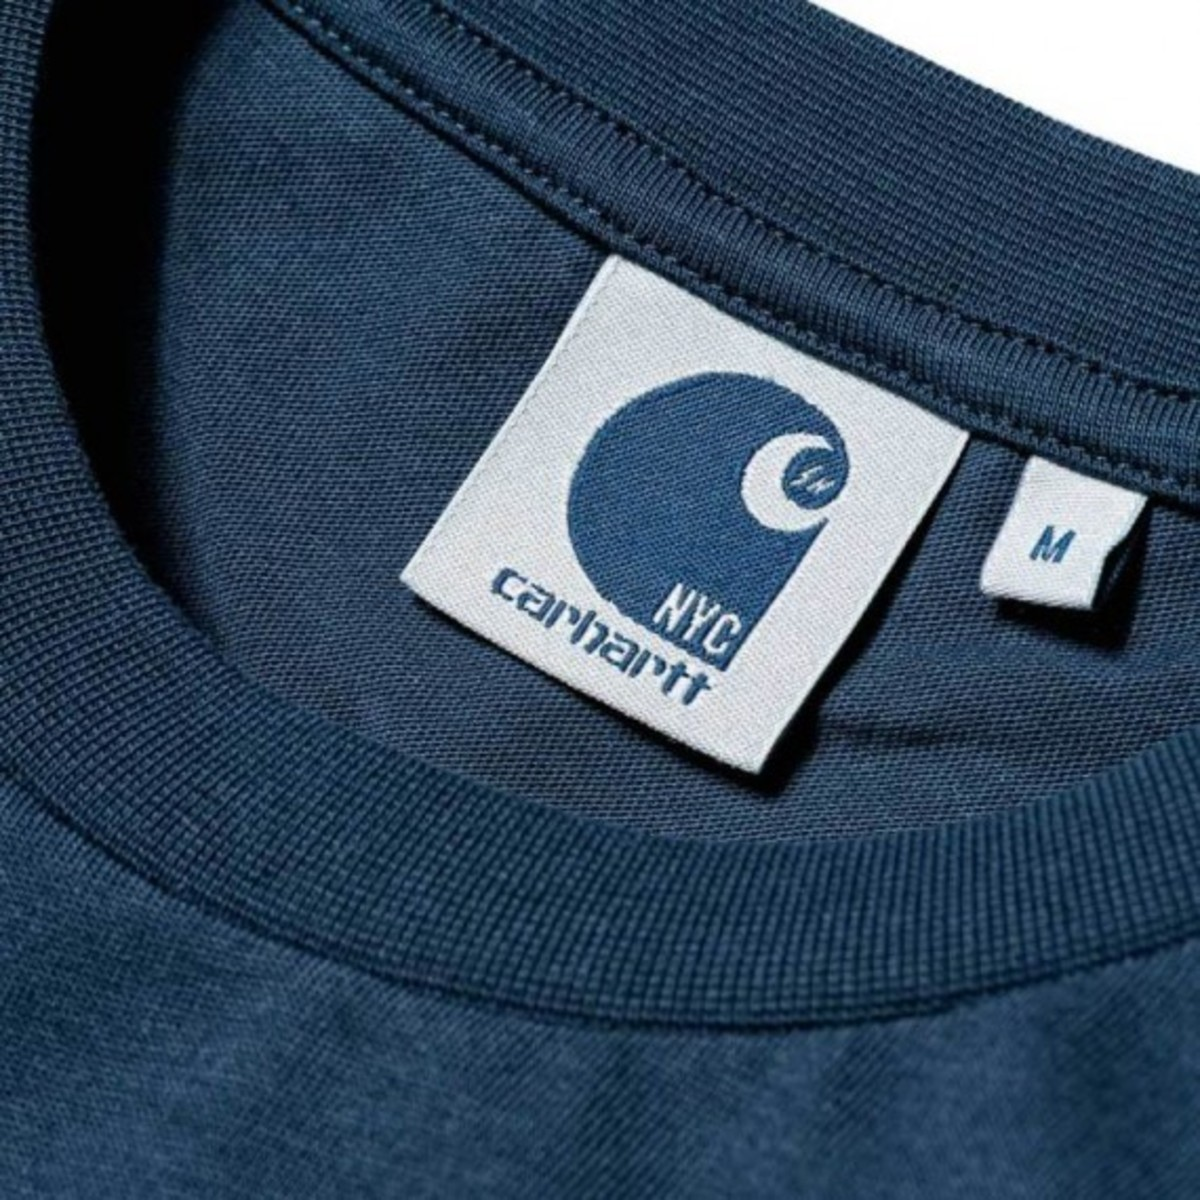 carhartt-wip-fragment-design-nyc-07